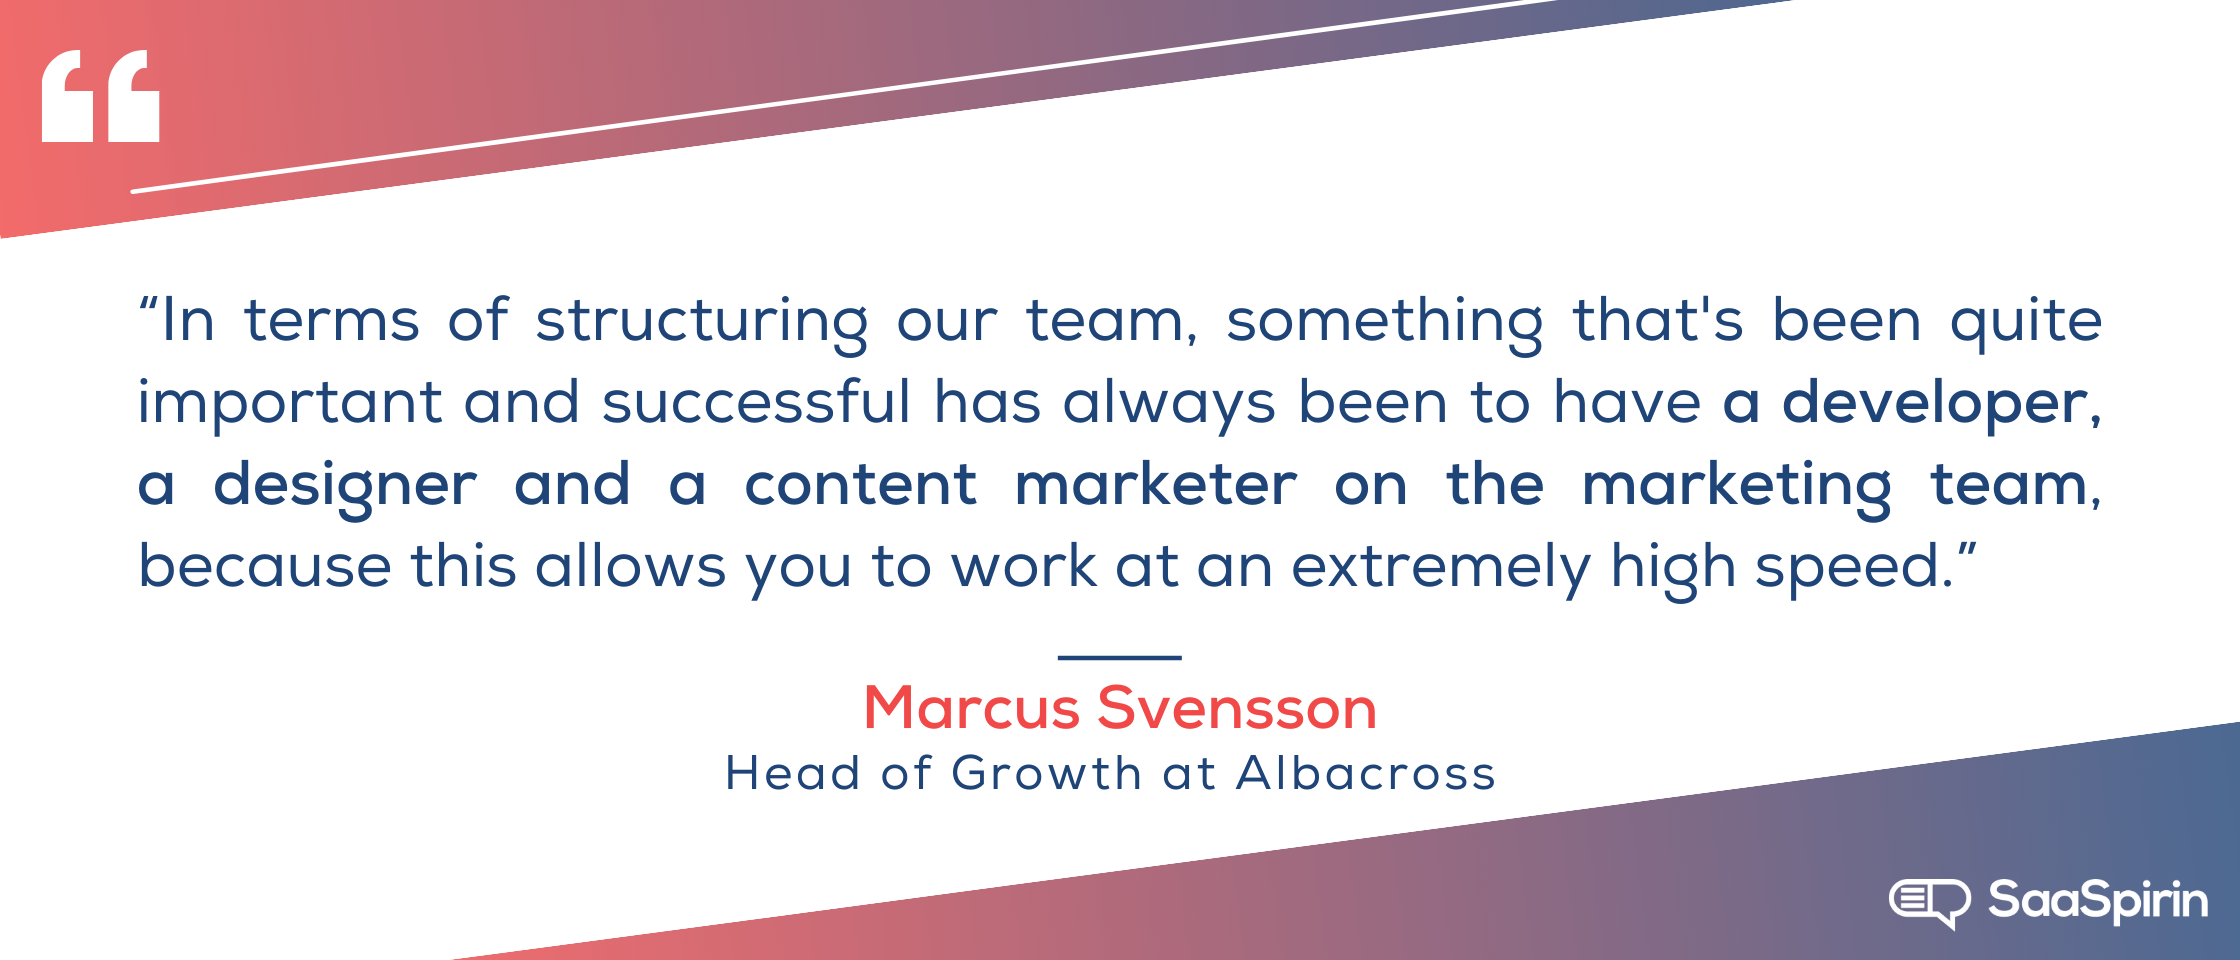 In-terms-of-structuring-our-team-something-thats-been-quite-important-and-successful-has-always-been-to-have-a-developer-a-designer-and-a-content-marketer-on-the-marketing-team-because-this-allows-you-to-work-at-an.png